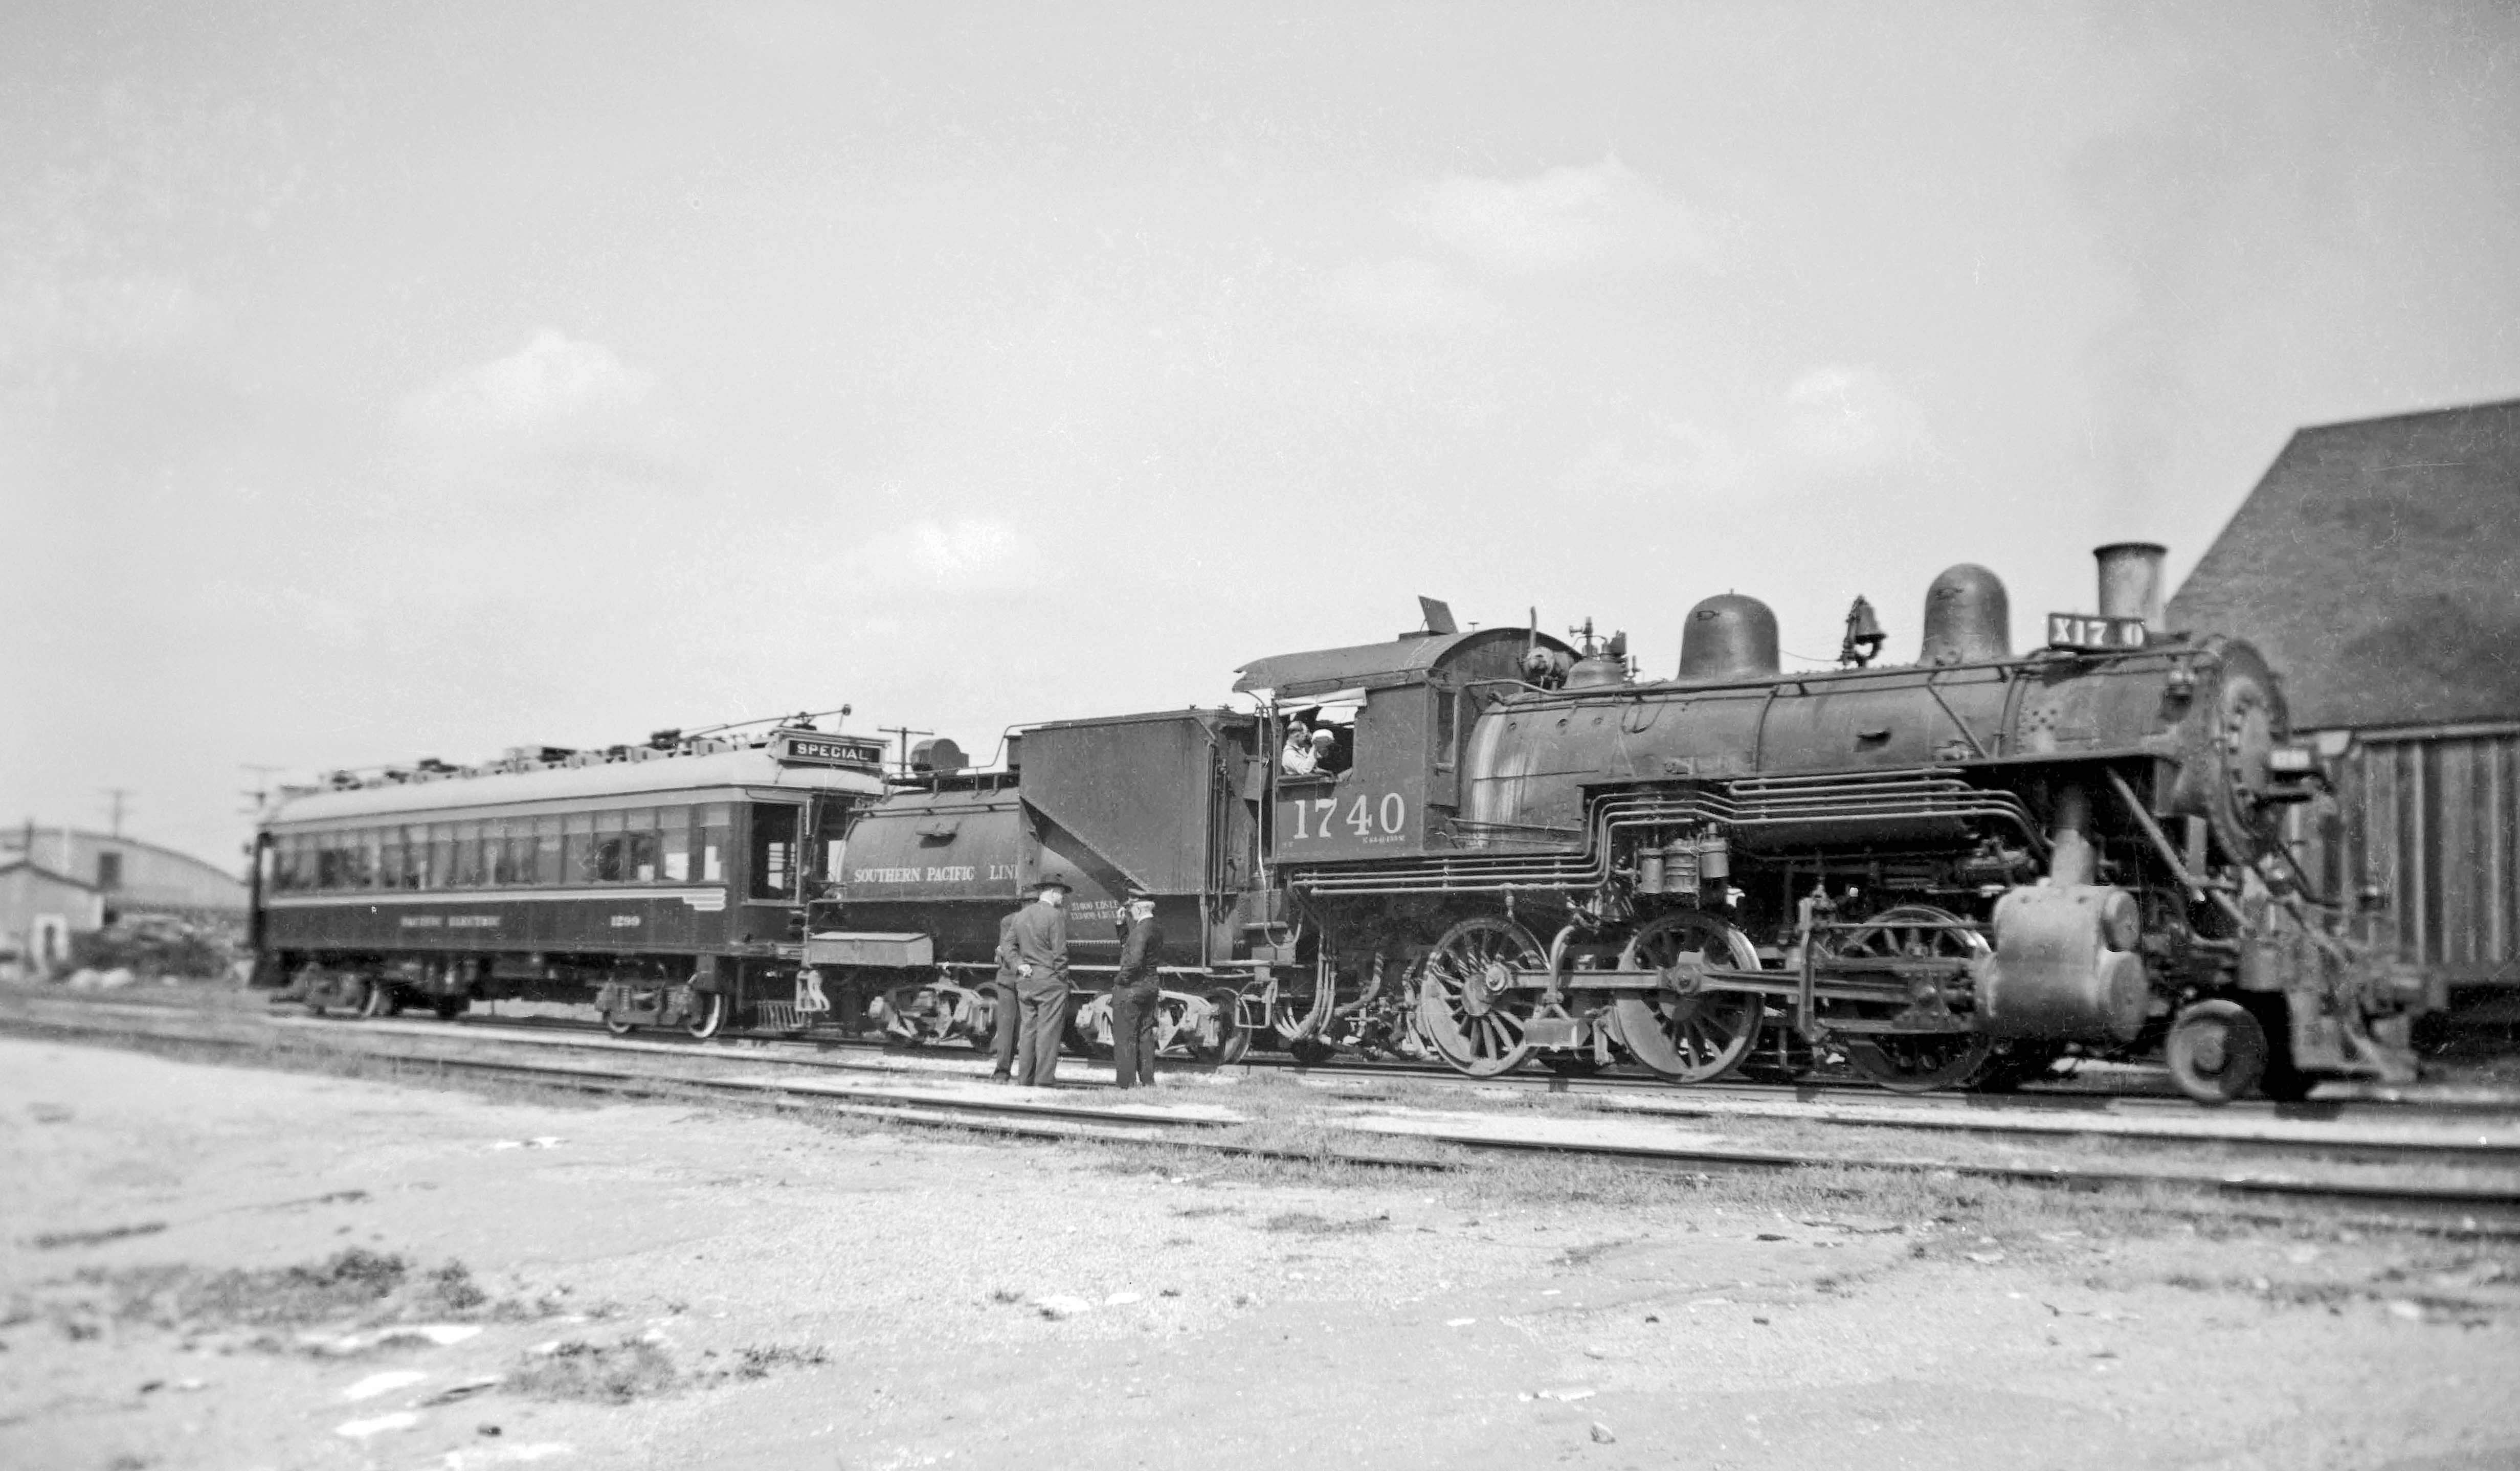 1299 and Southern Pacific 1740 at Covina - Pacific Electric